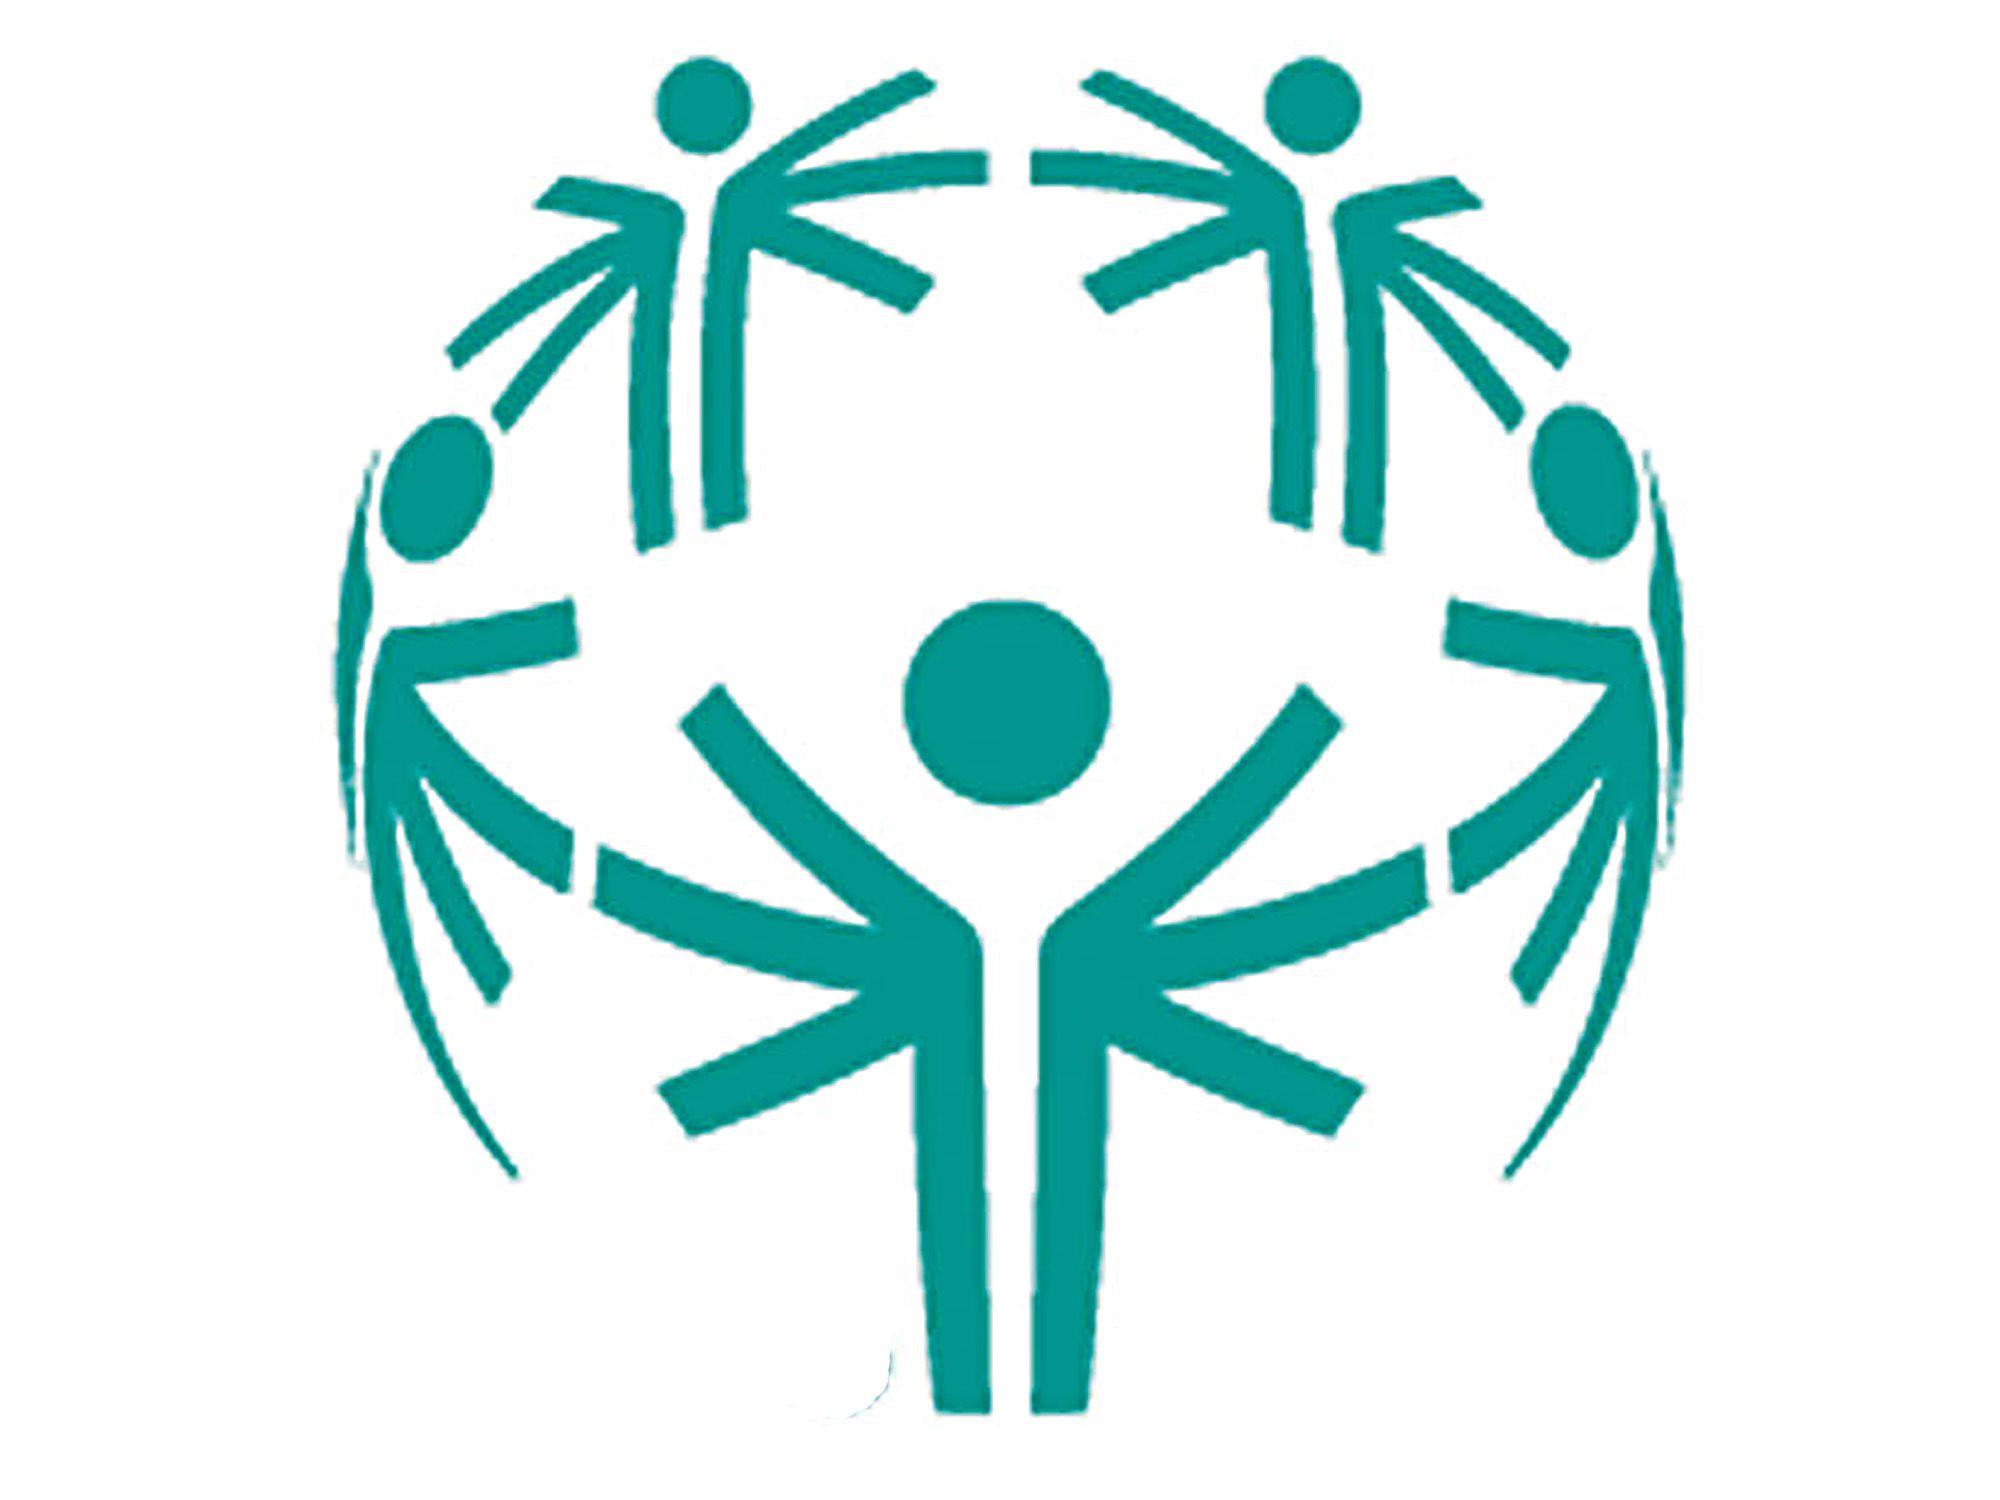 special olympics - Google Search | Special olympics ...